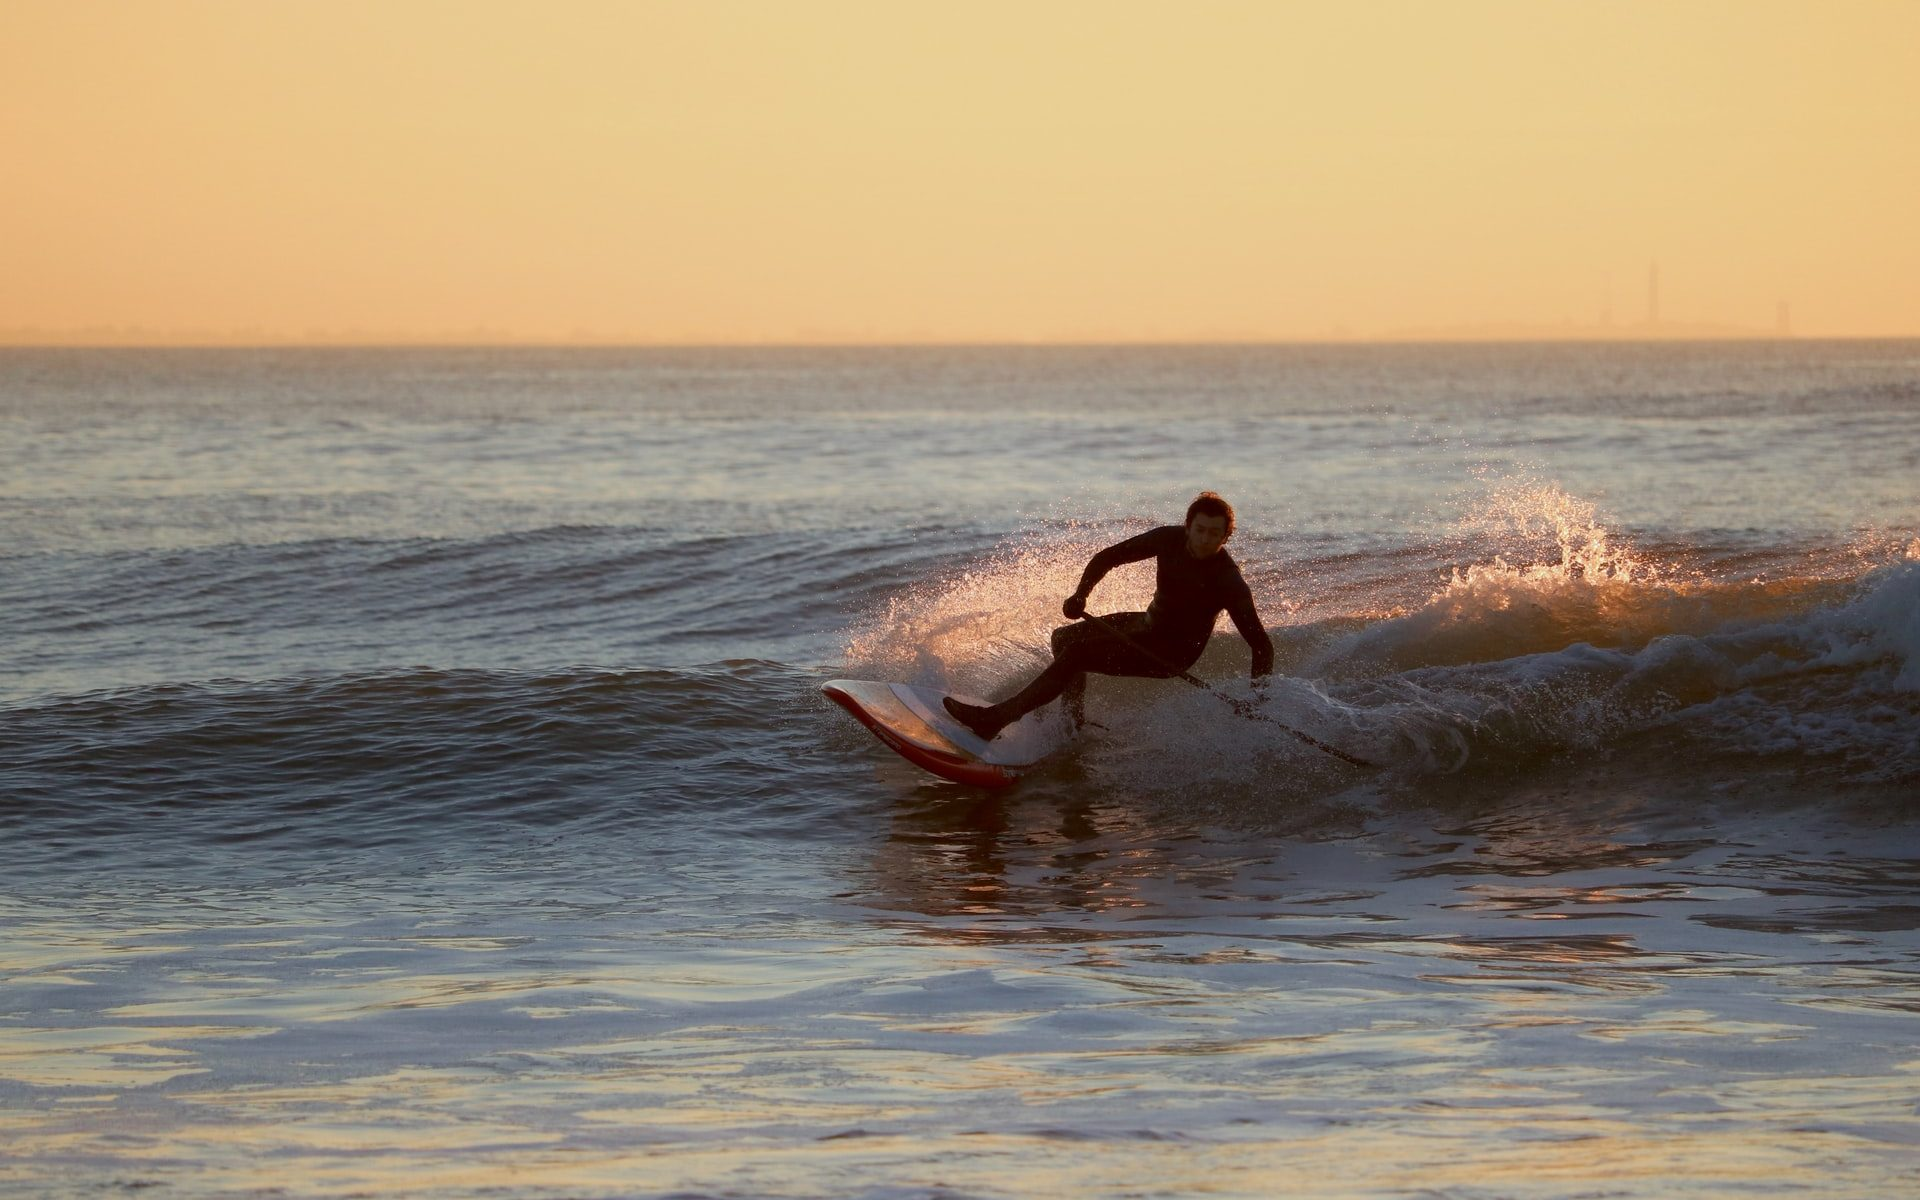 surfing vs sup differences